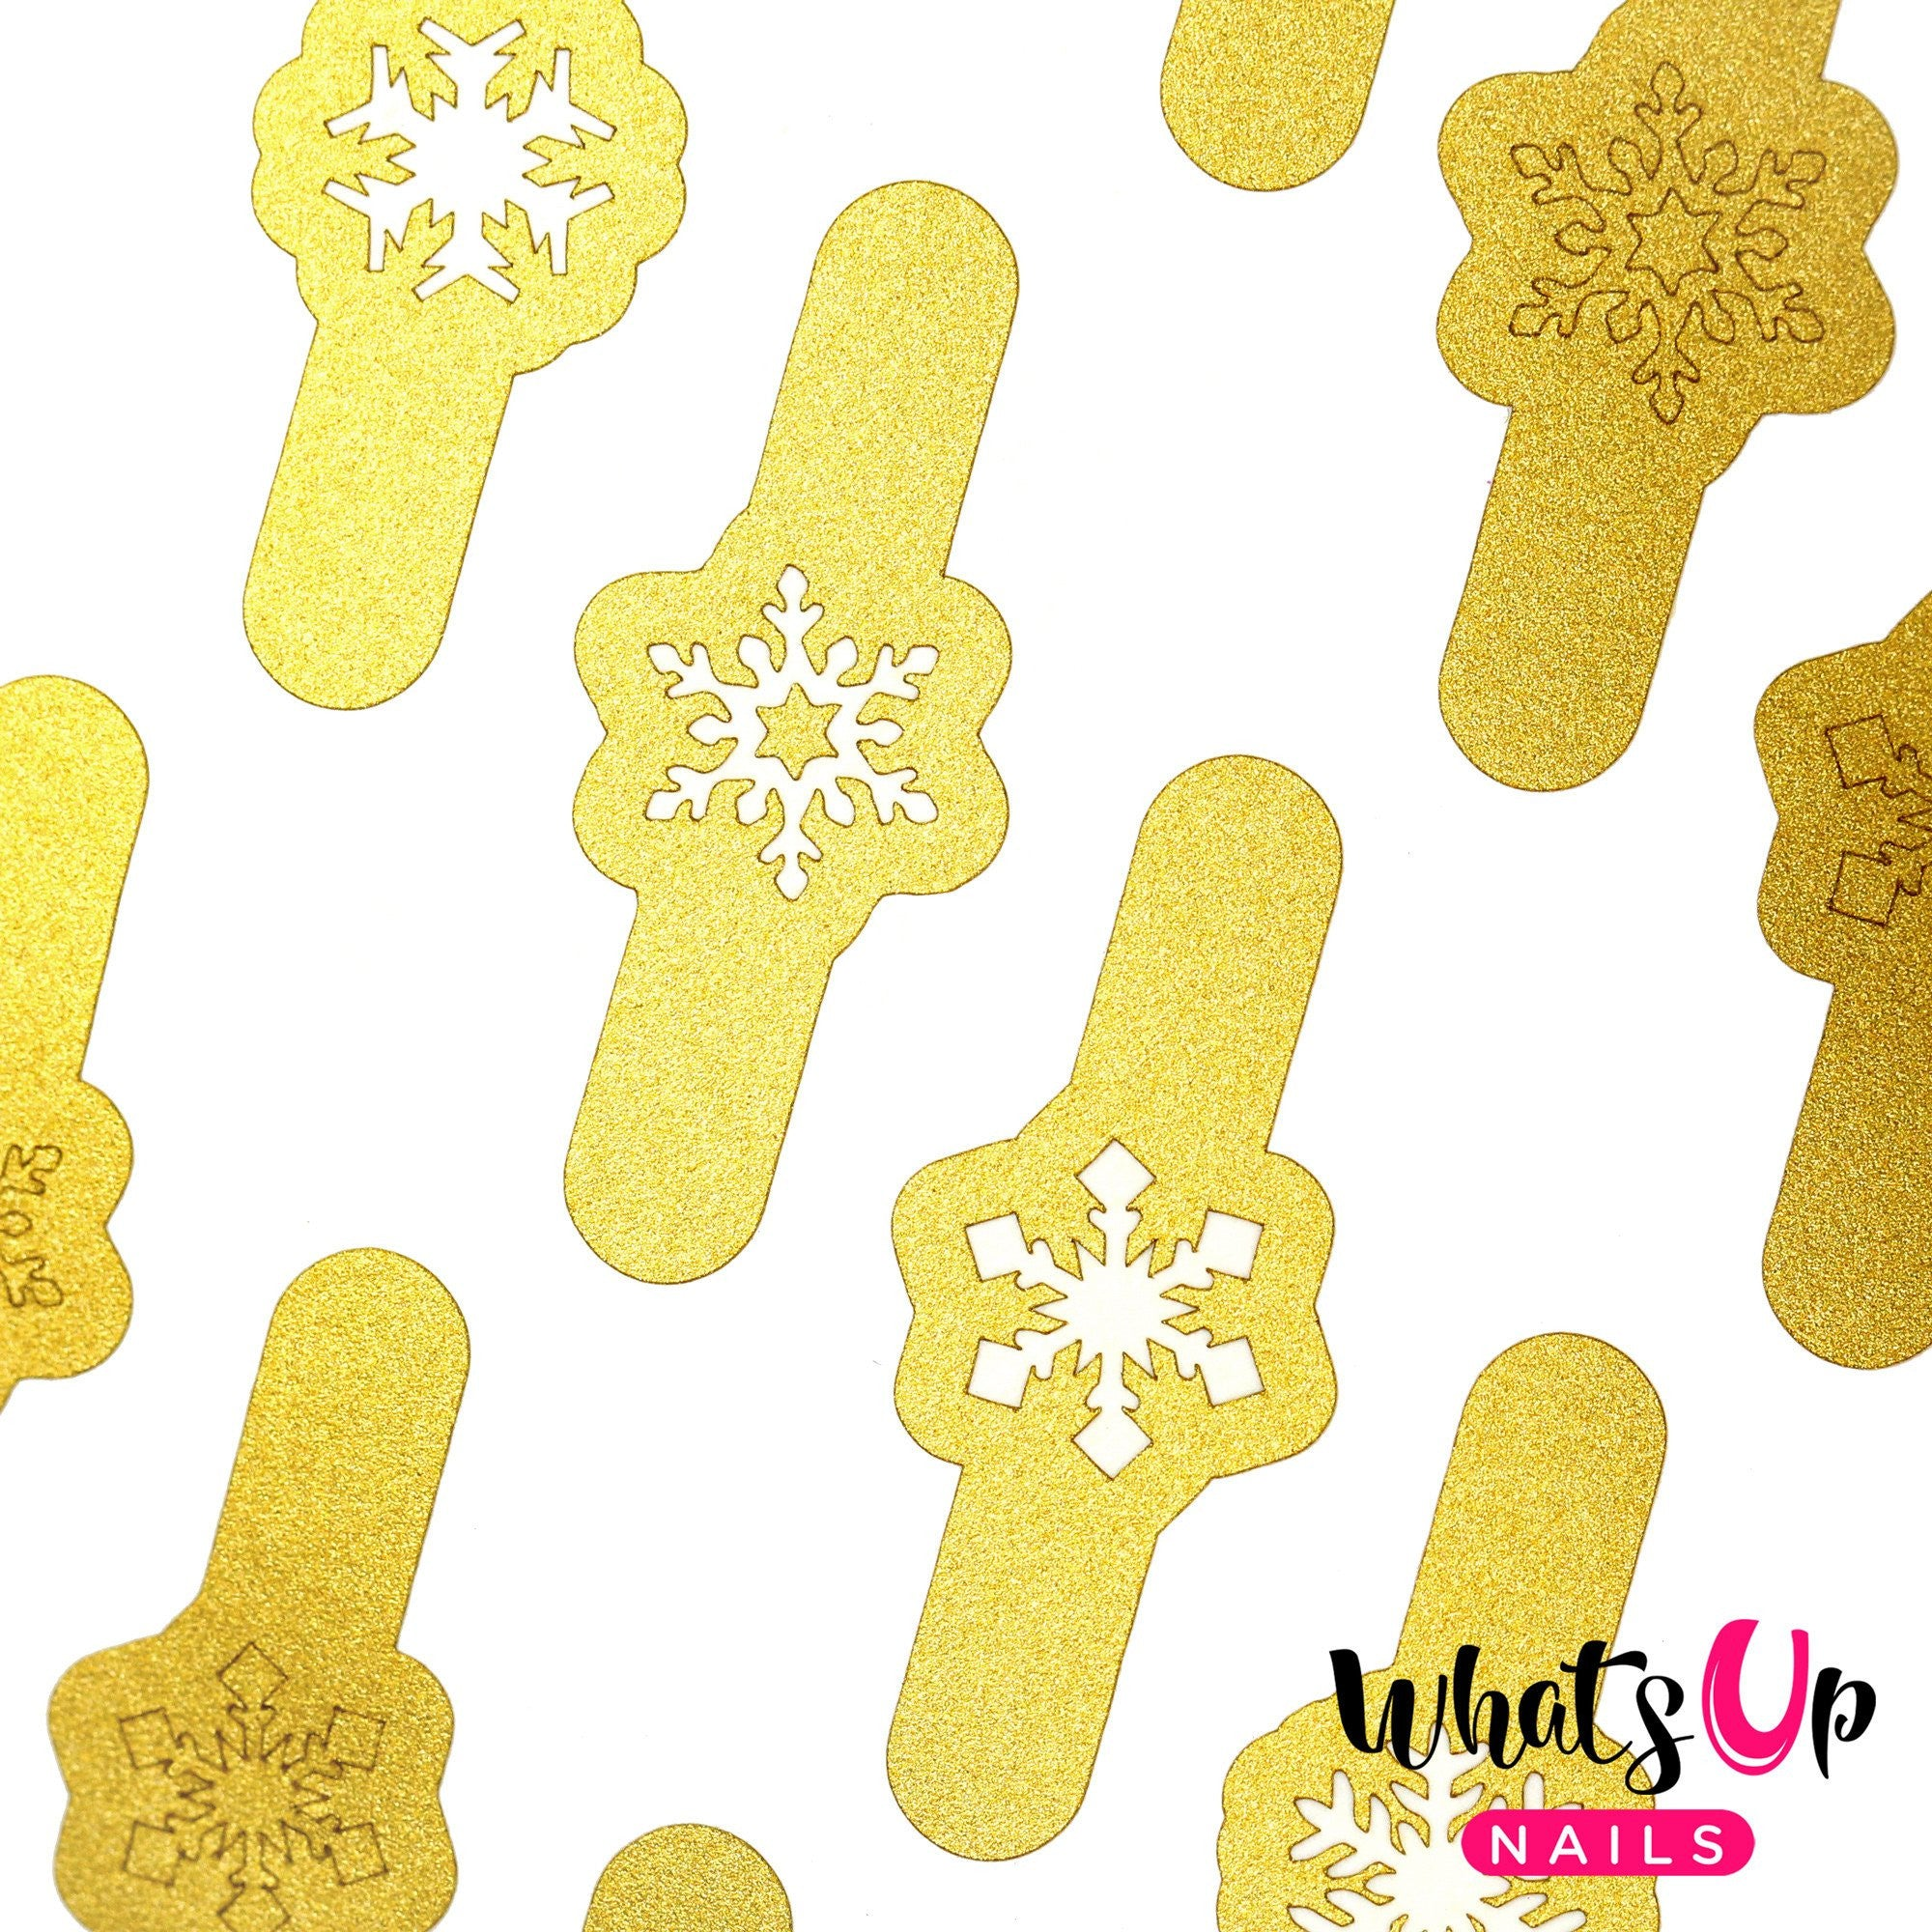 Daily Charme Nail Art Supply Nail Vinyls Sticker Stencil Whats Up Nails / Merry Snowflakes Stickers & Stencils / Gold